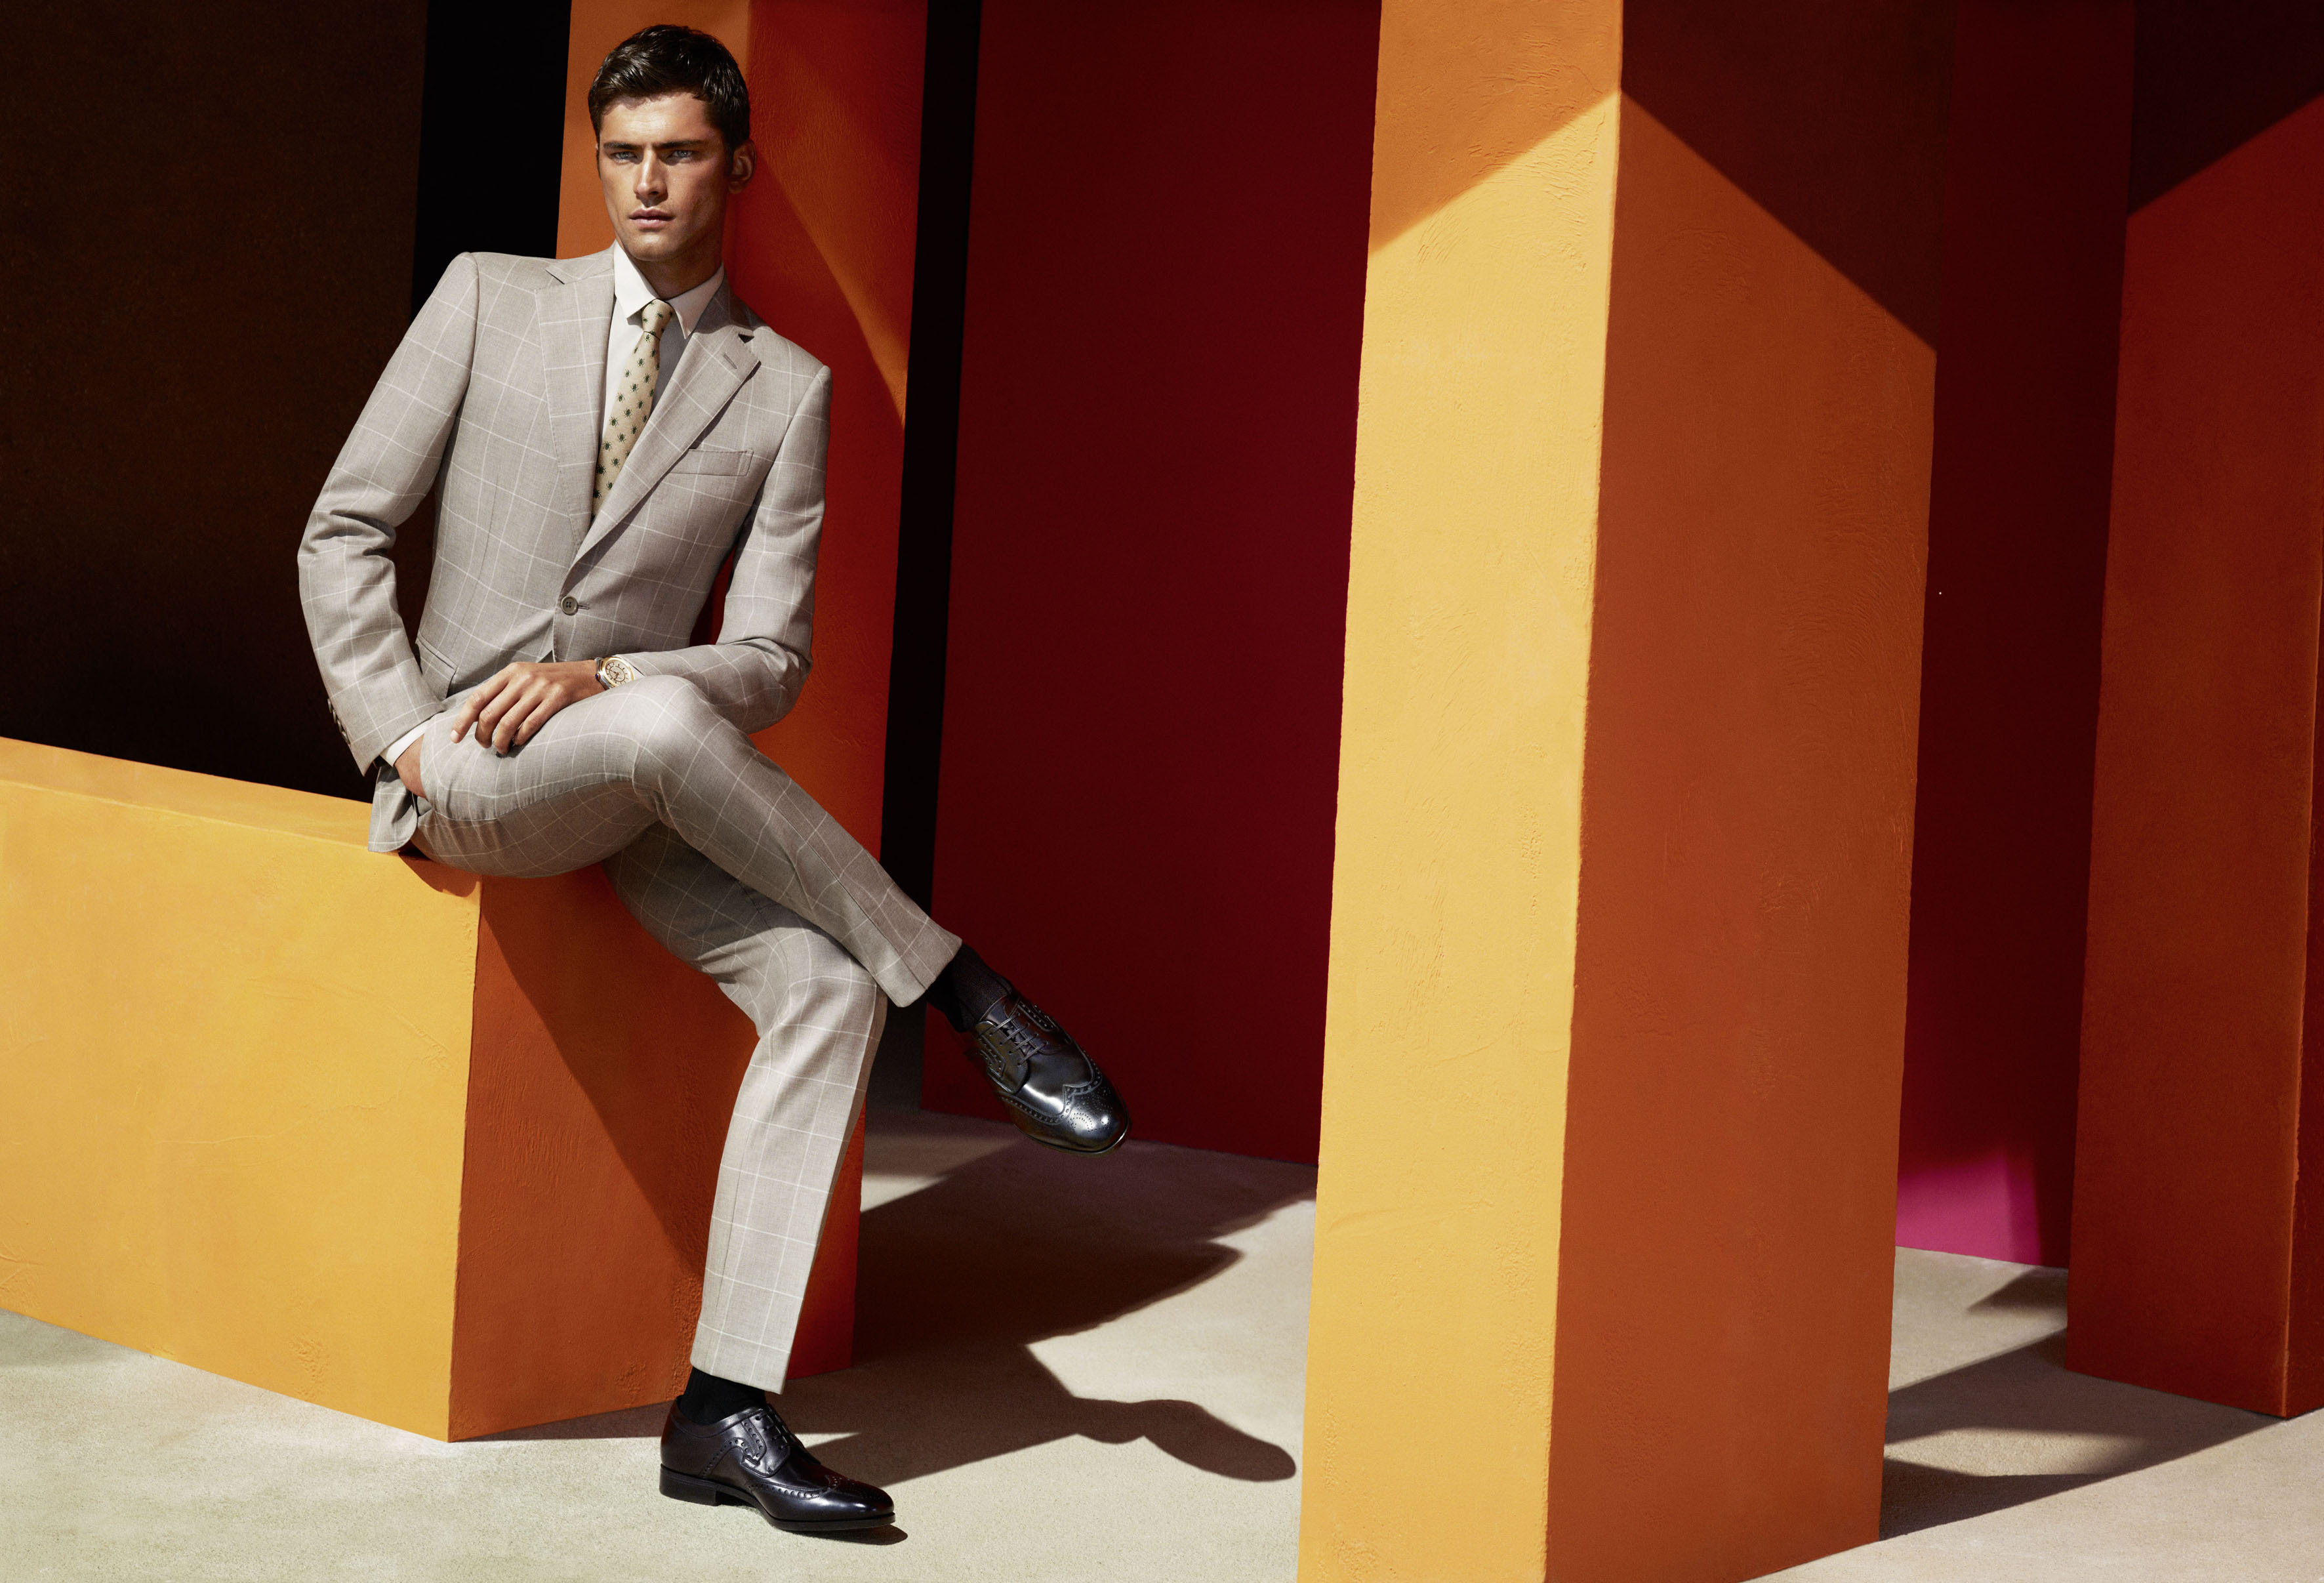 Sean Opry Download Free Backgrounds Hd